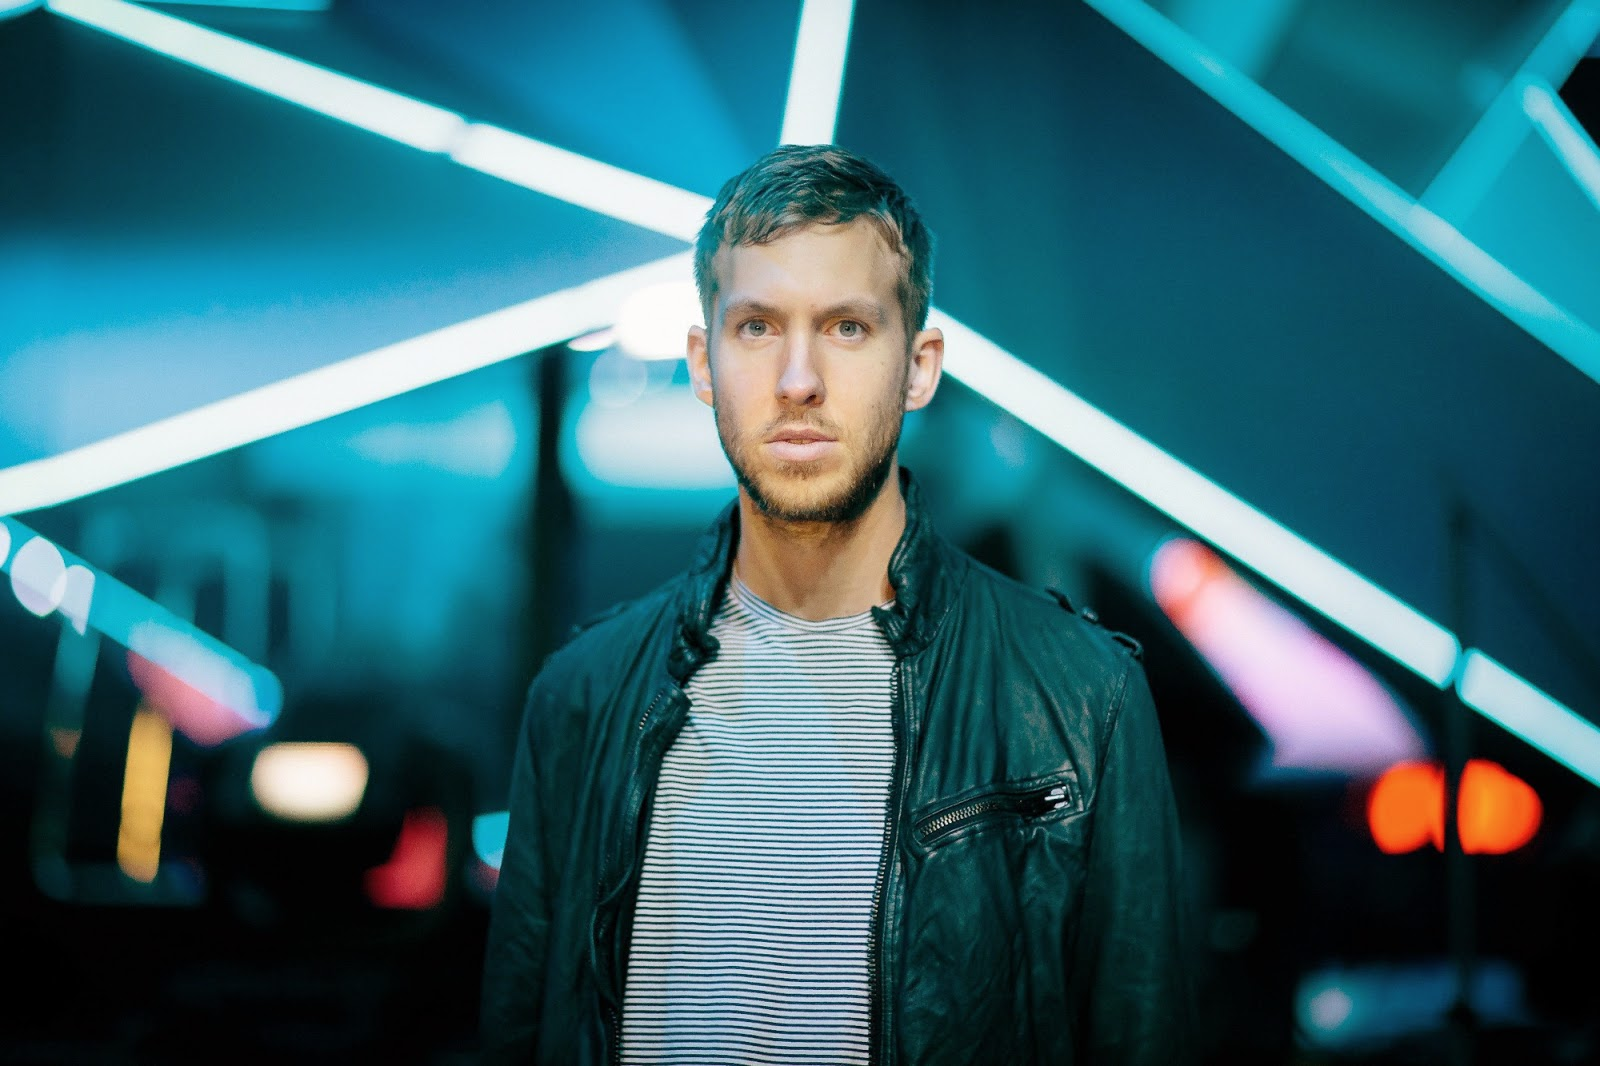 Us Chart Roundup: Calvin Harris Has Another Top 40 Hit In America